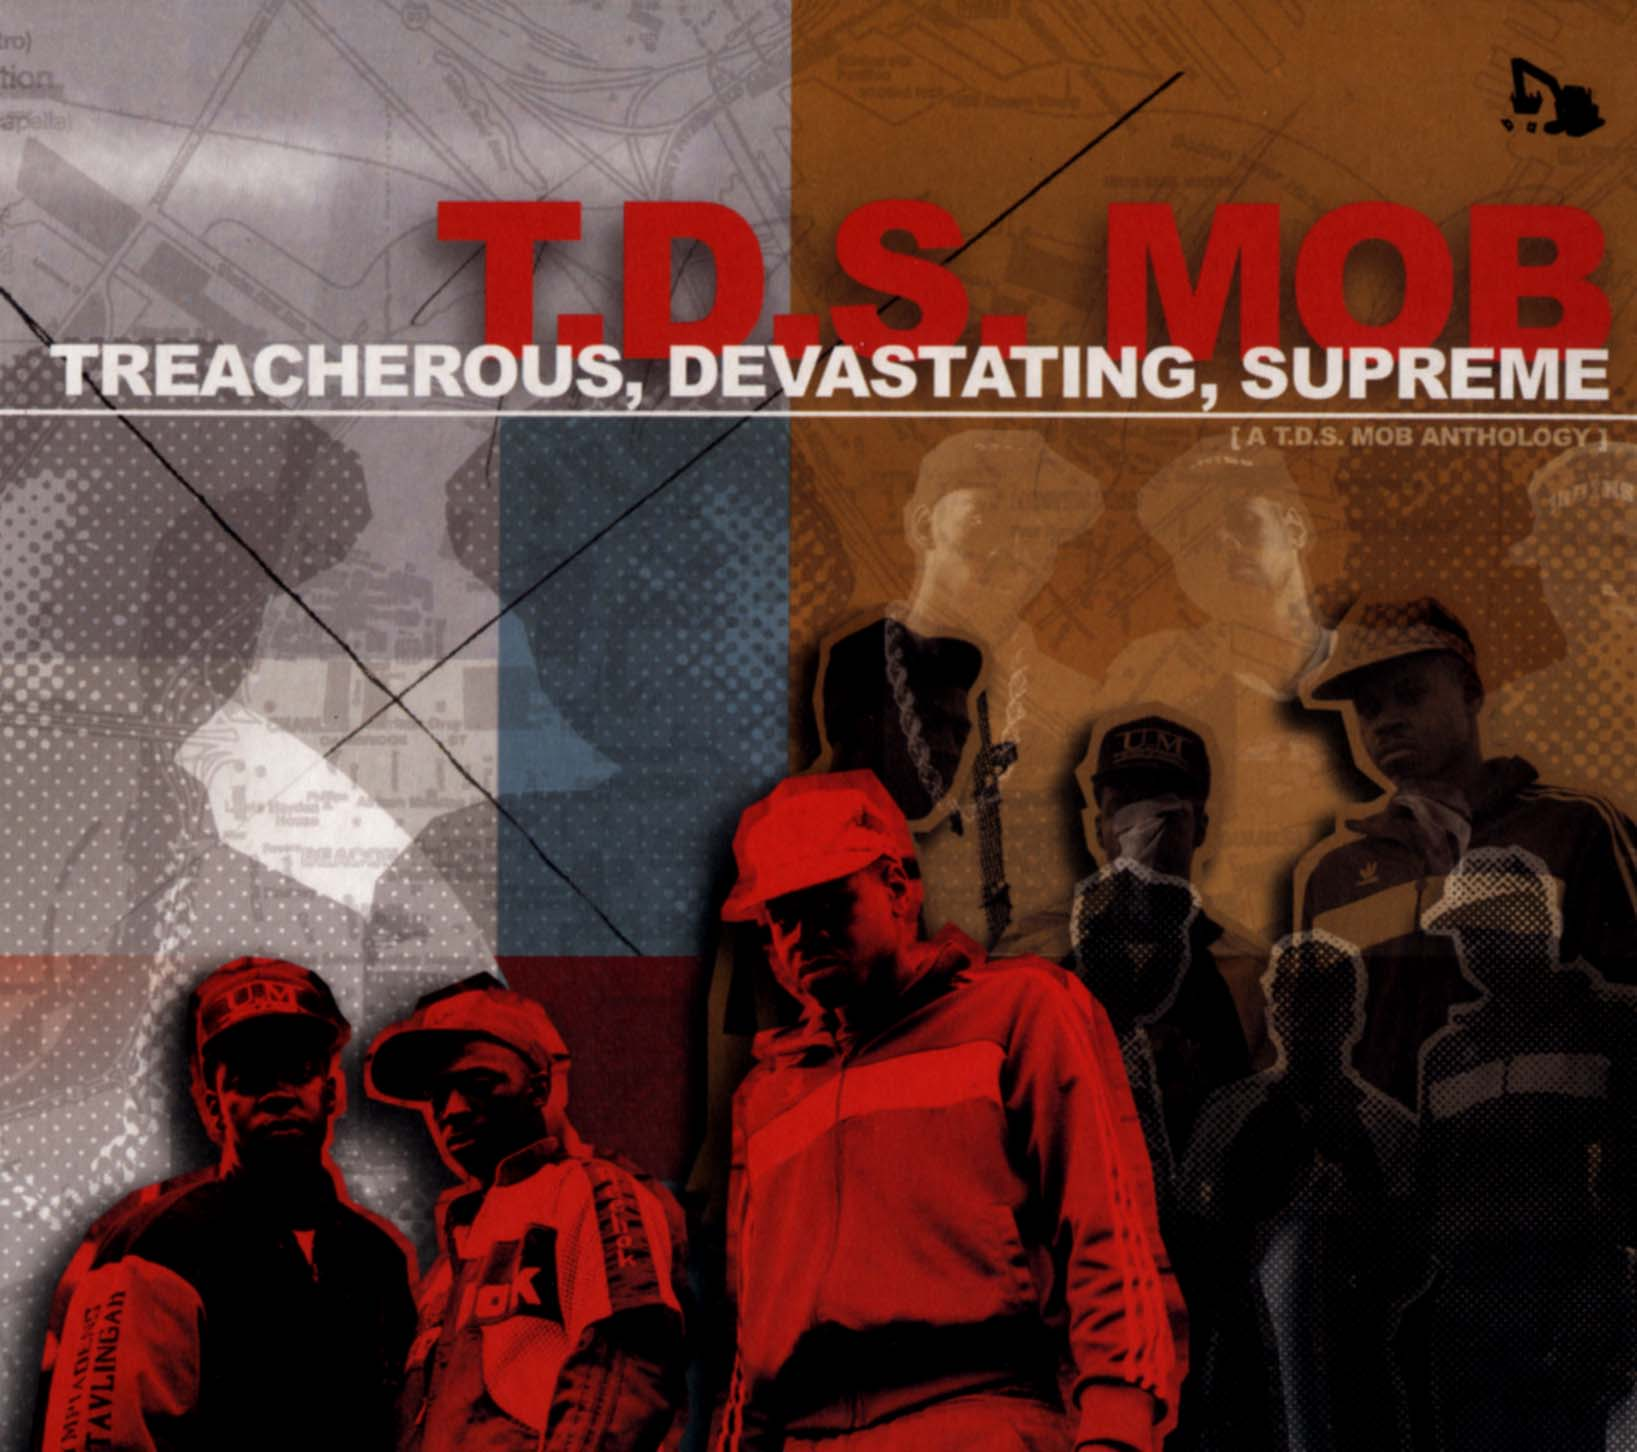 T.D.S. Mob: Treacherous, Devastating, Supreme